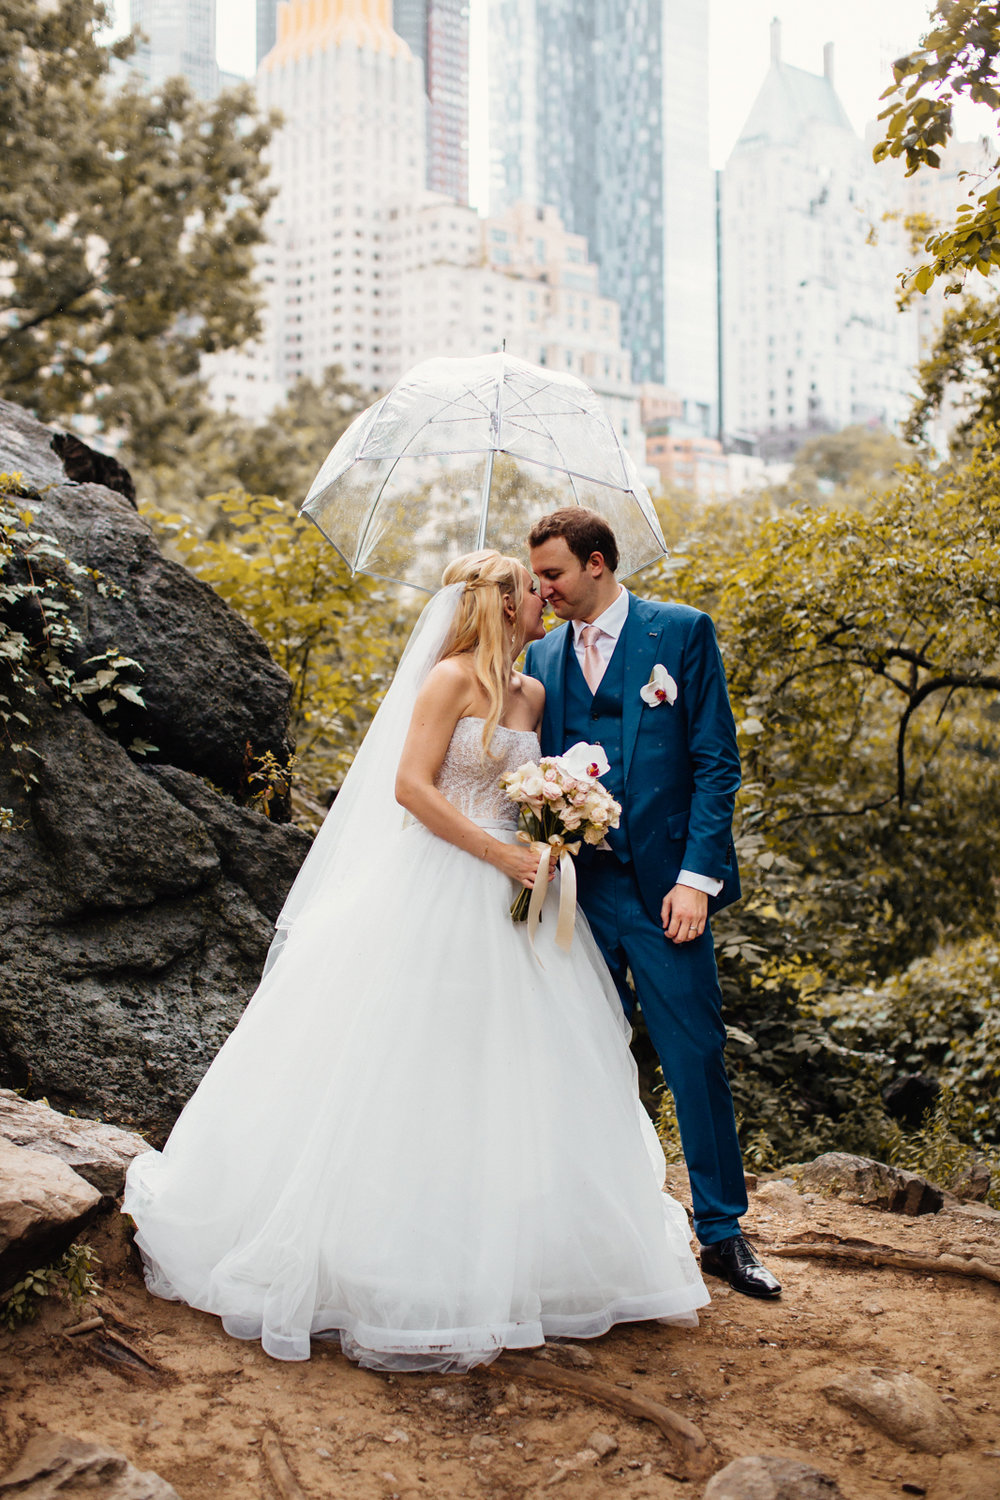 NYC Wedding Photography Sofitel Central Park Brooklyn Photographer Boris Zaretsky _B2C2562.jpg